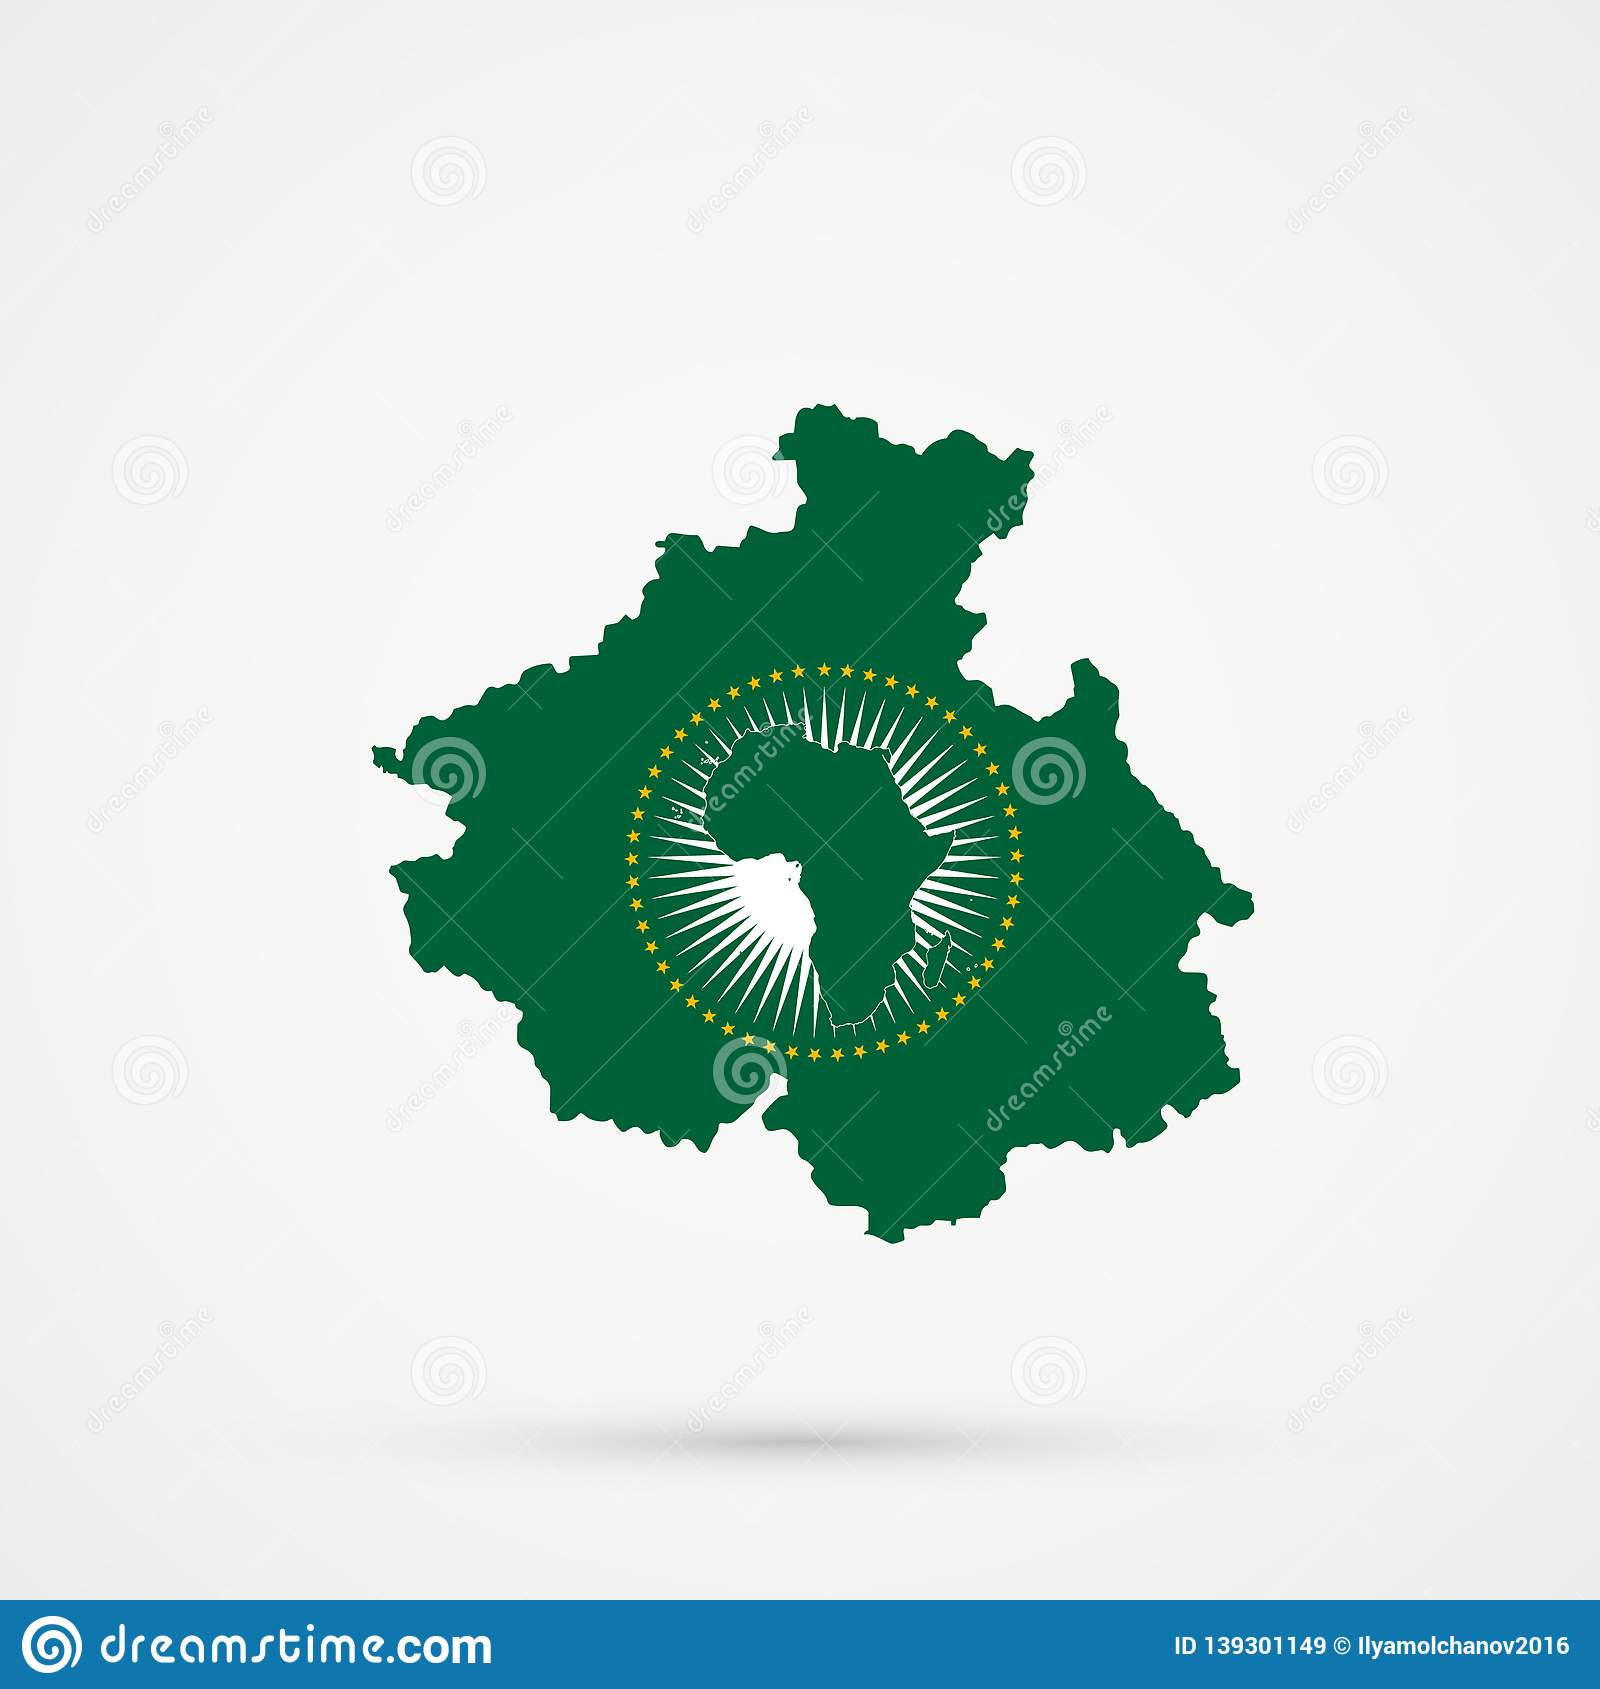 African Union Map.Altai Republic Map In African Union Au Flag Colors Editable Vector